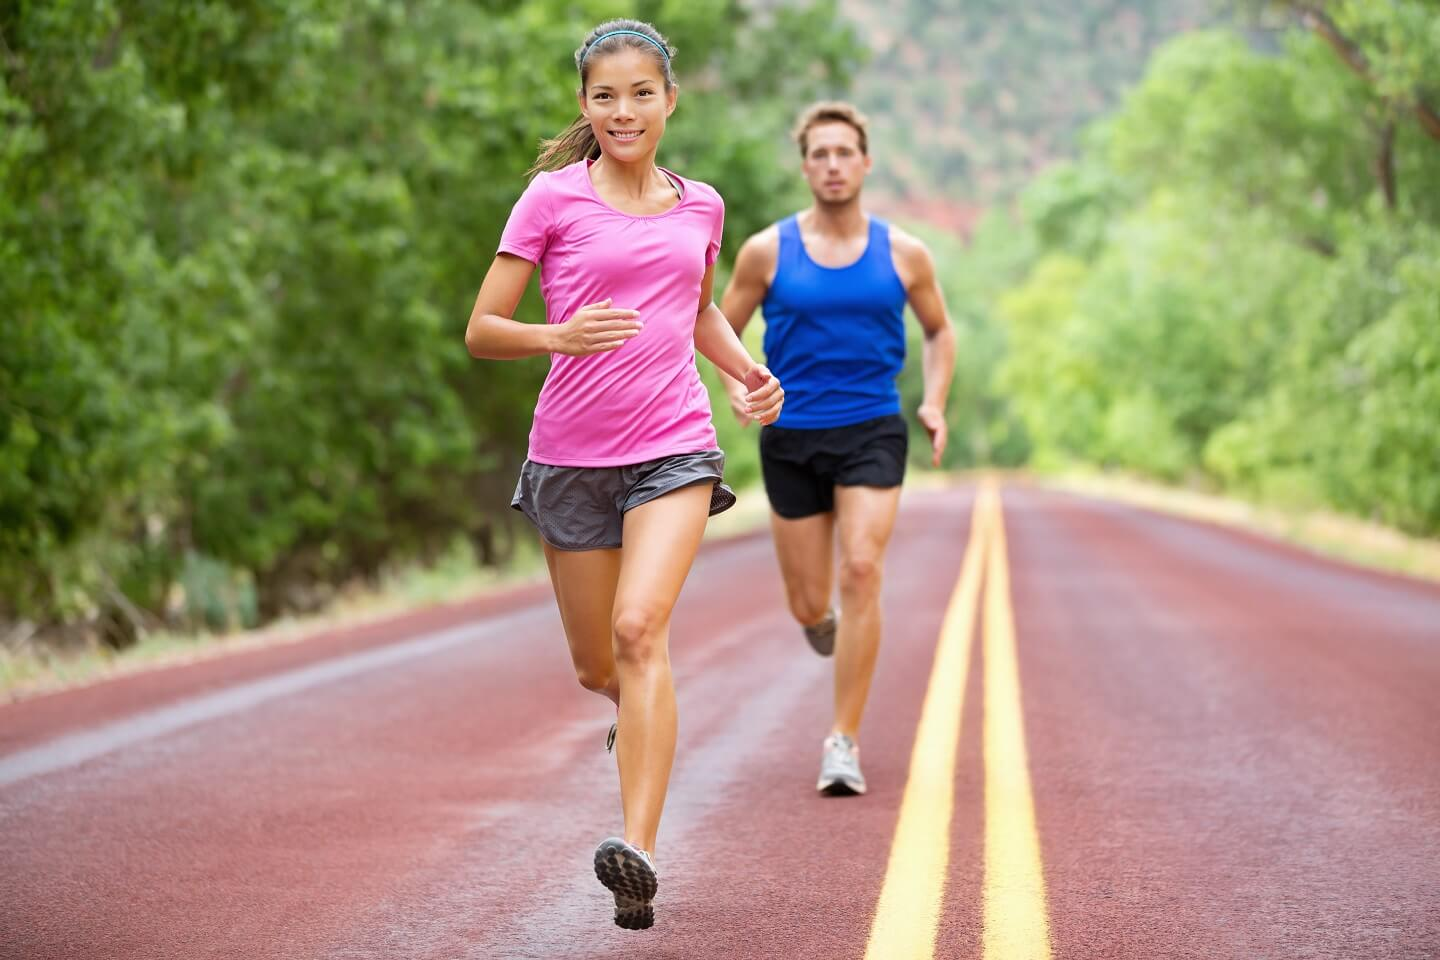 Can You Exercise After A Vein Procedure?